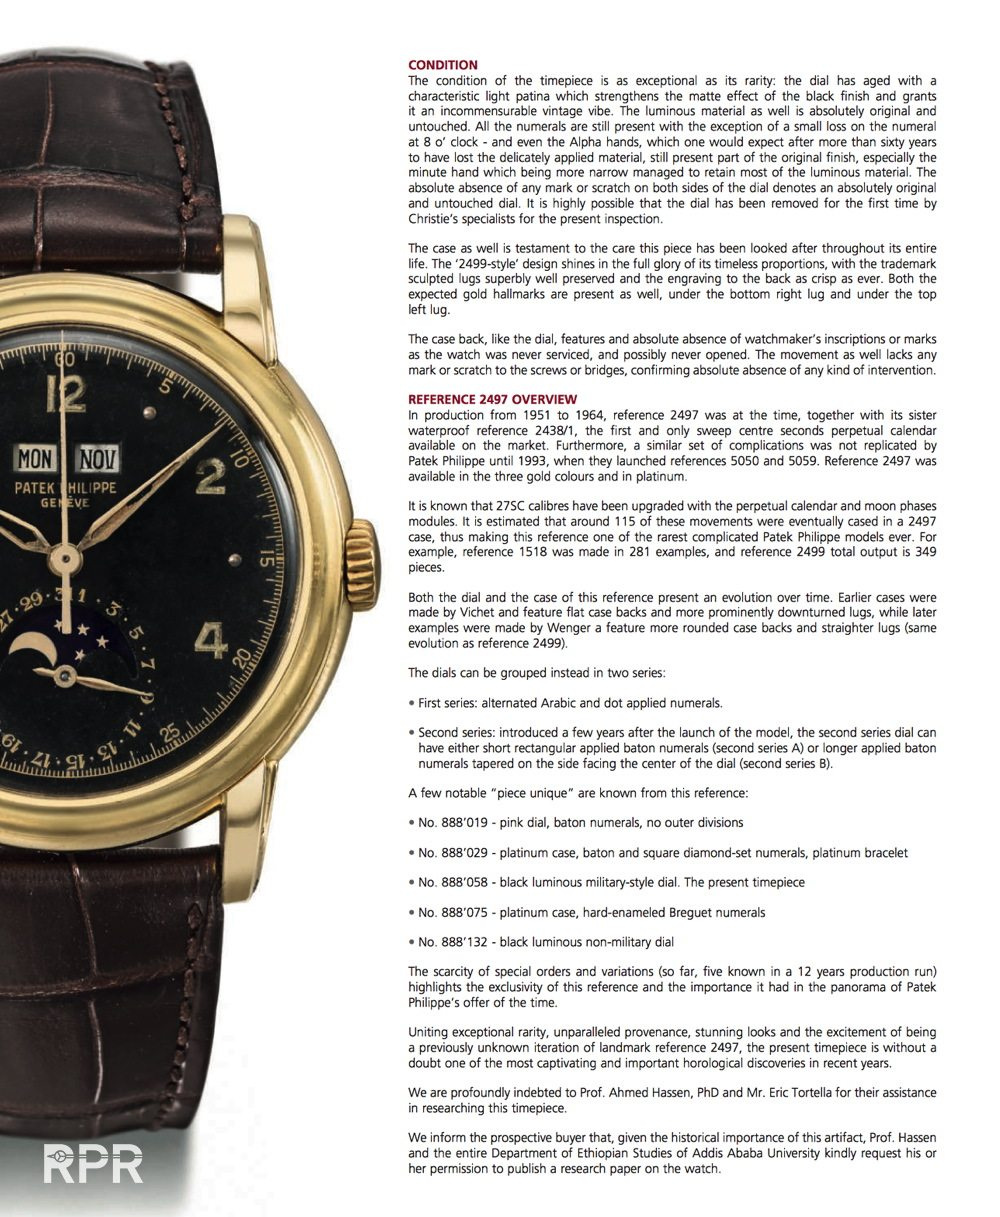 RPR_Rolex_geneva_auction_2015_88